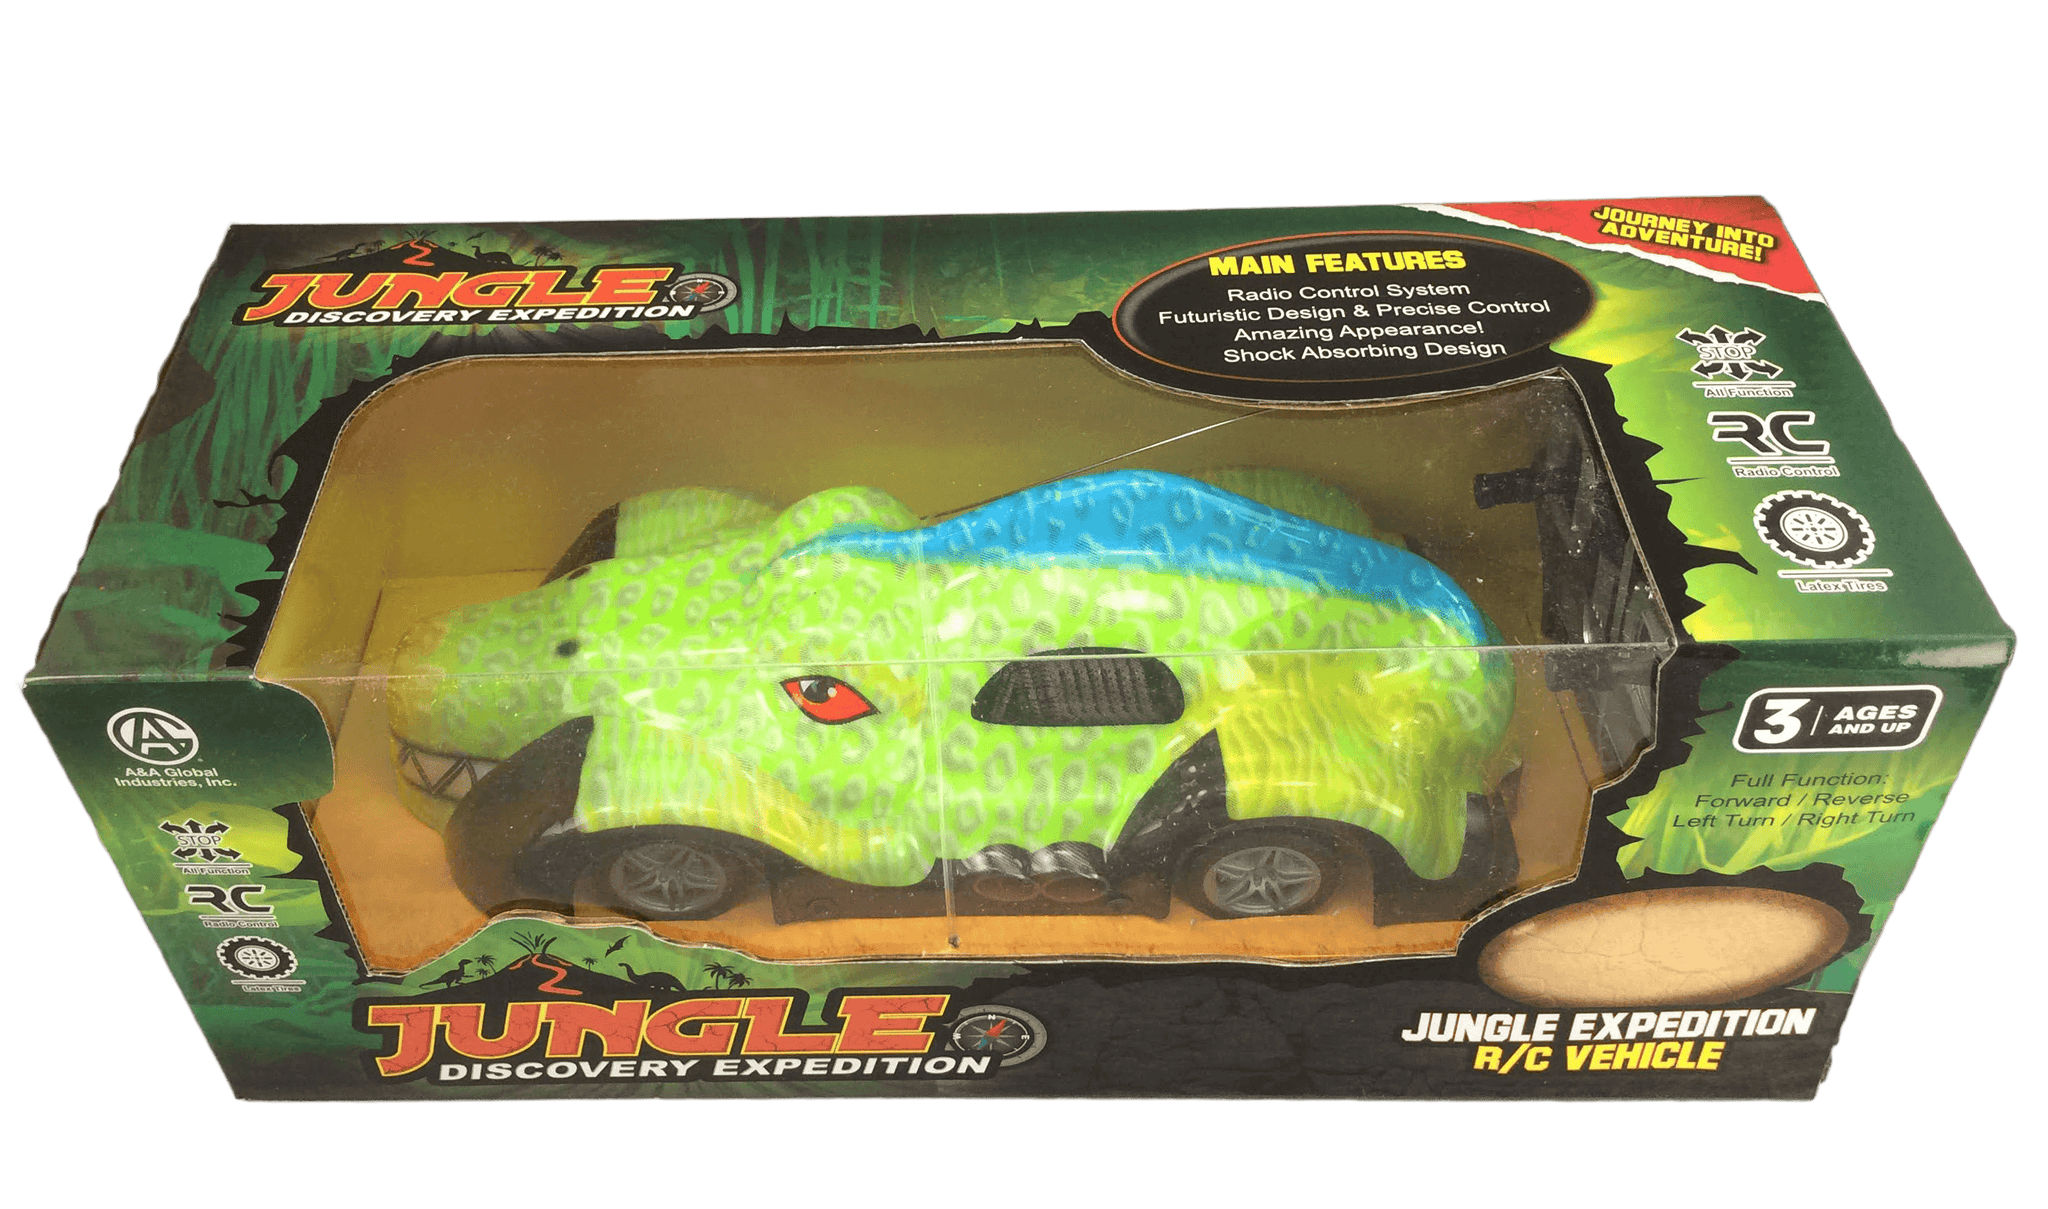 Jungle Discovery Expedition Remote Control Gator Truck